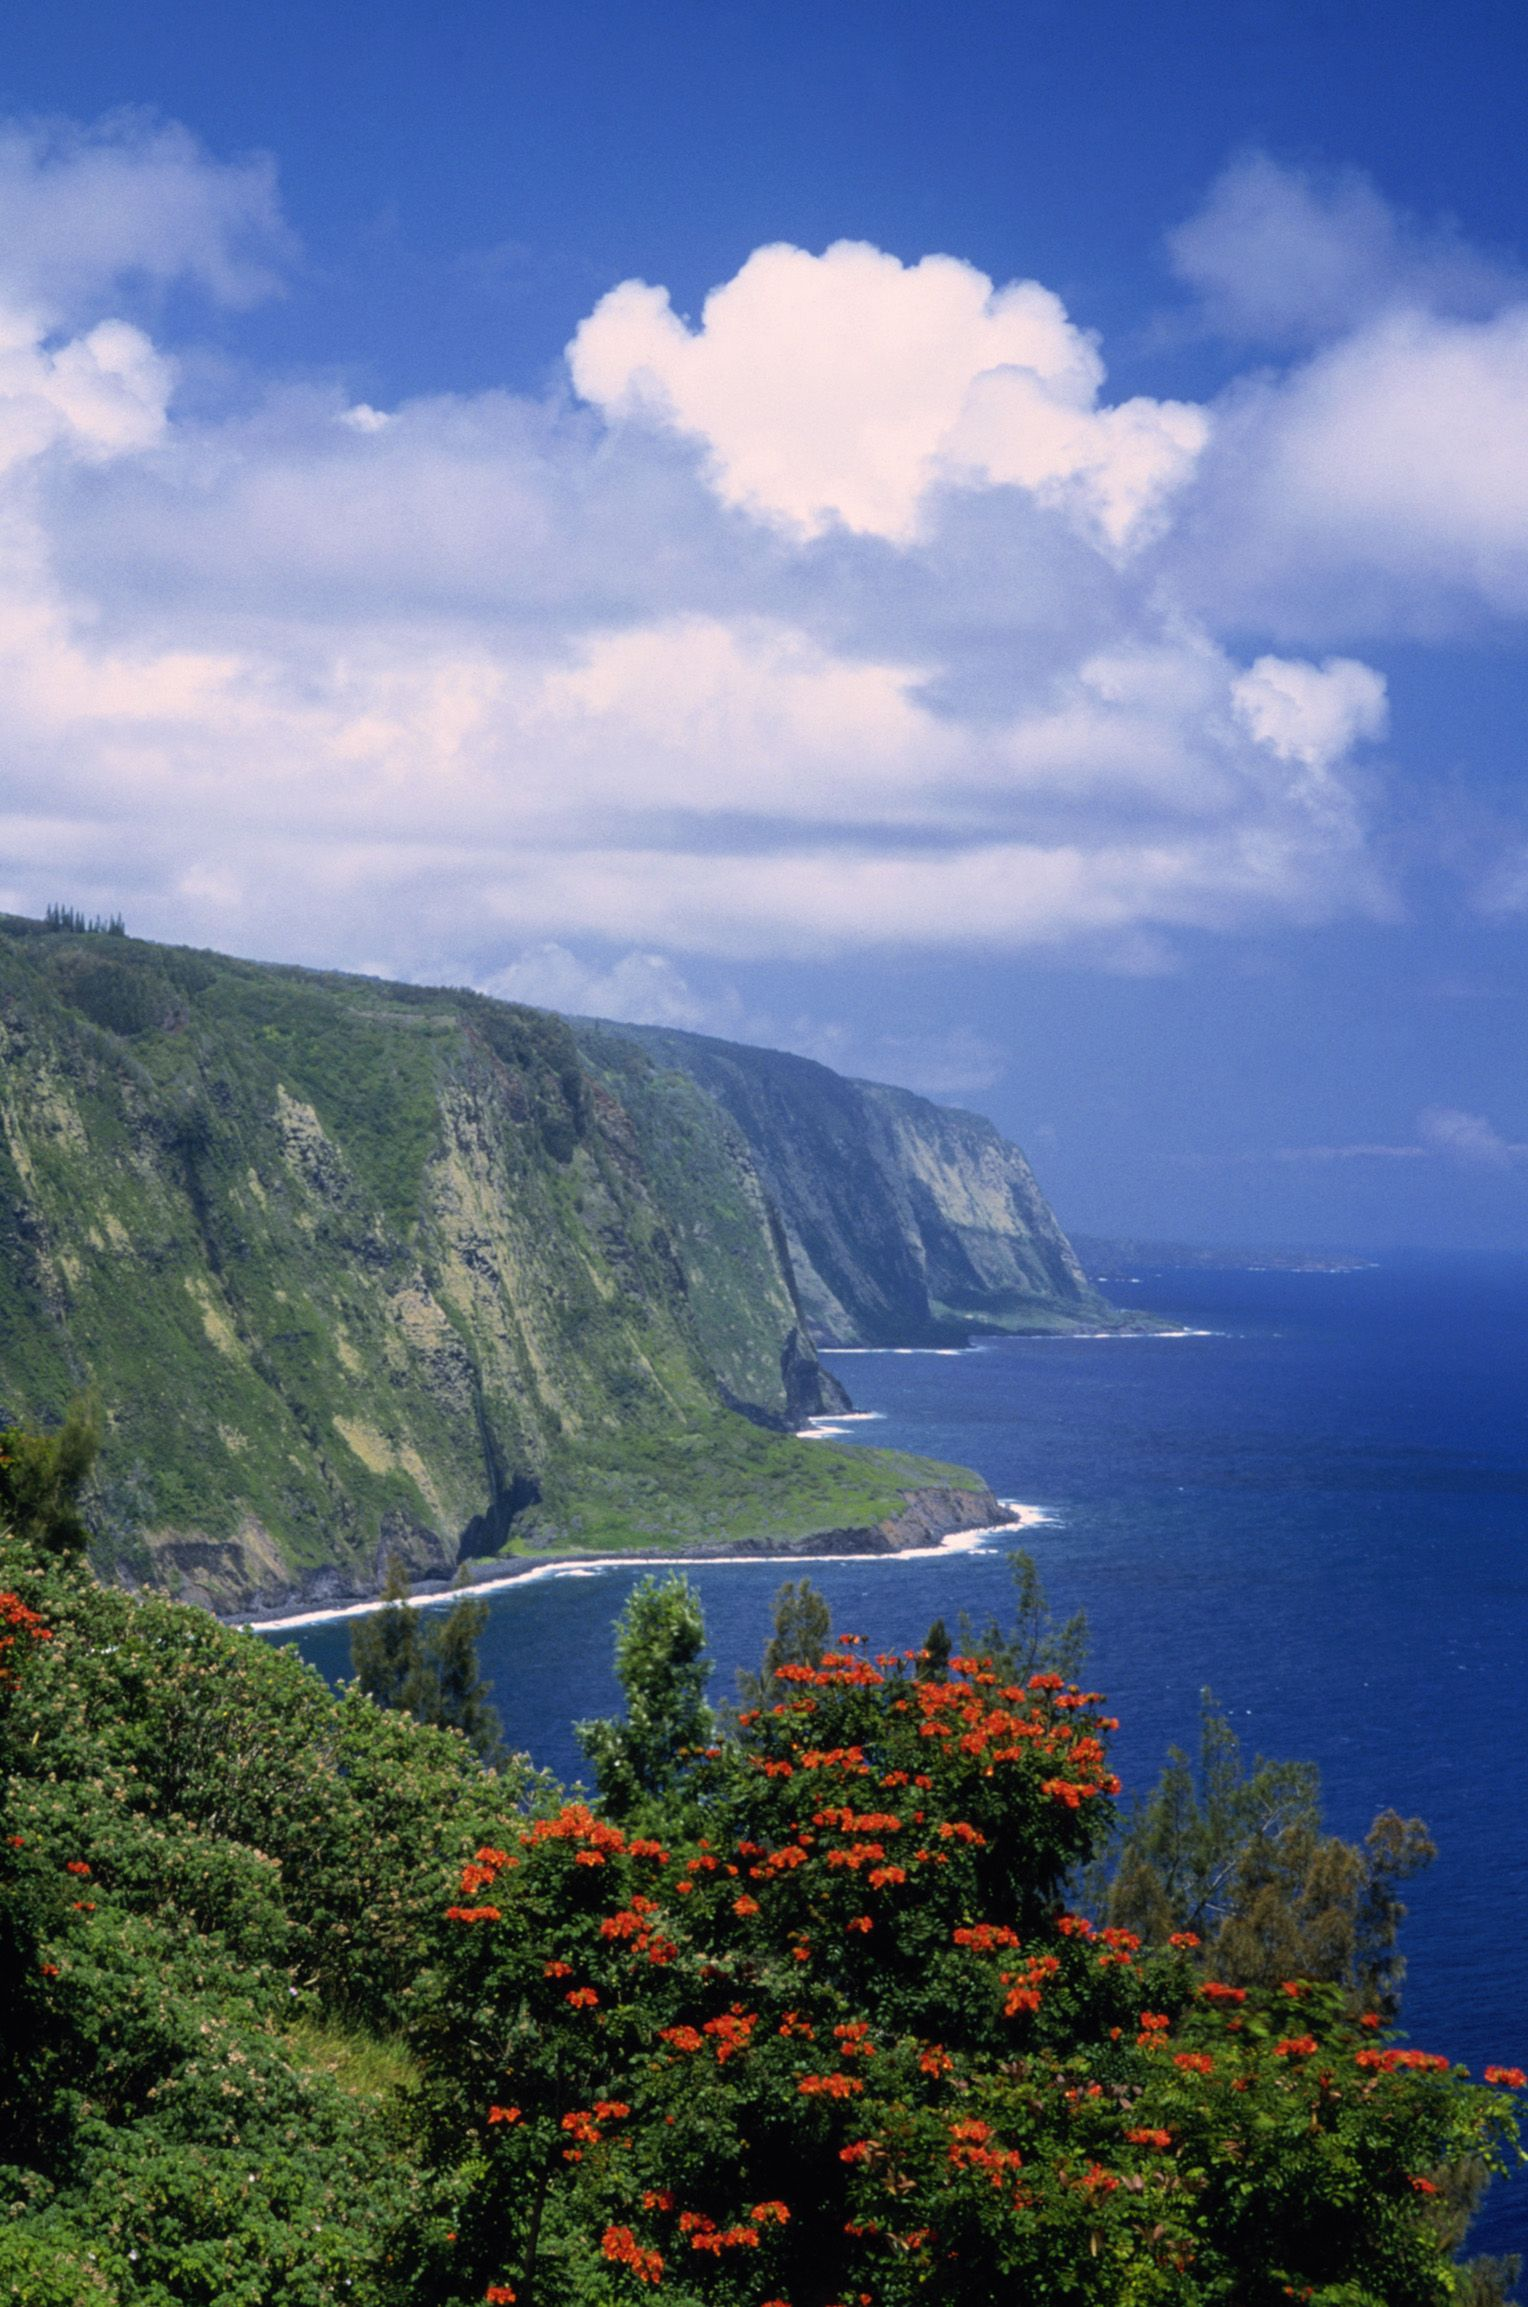 Bask in the towering cliffs along Kauai's North Shore.